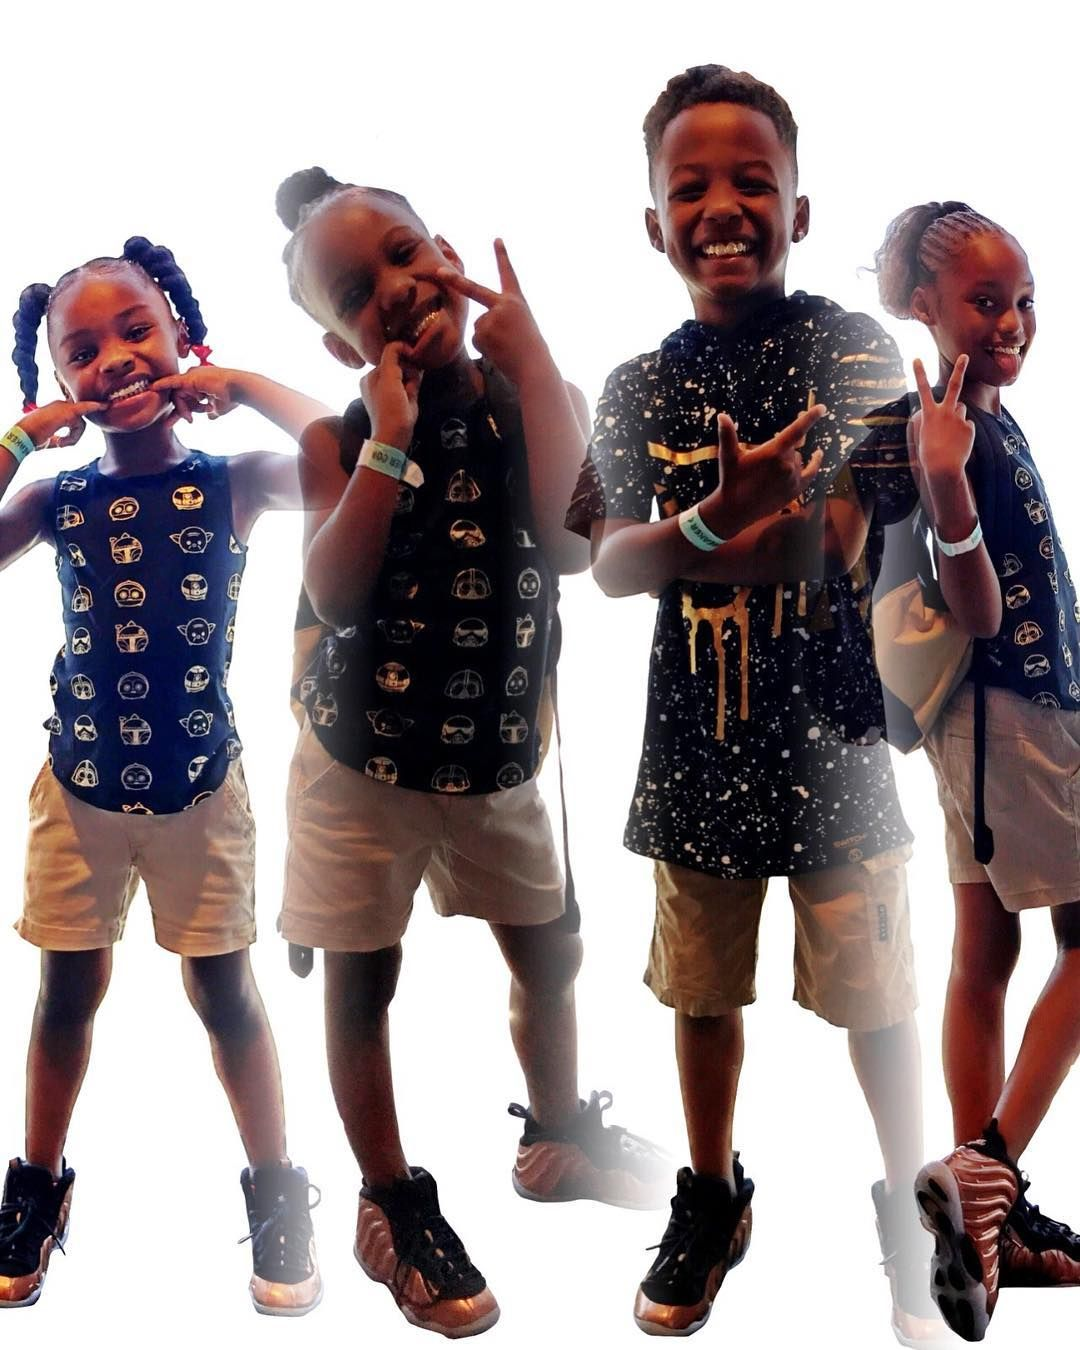 50 3k Likes 3 116 Comments Cj So Cool Cj Socool On Instagram What Should This Kid Group Be Called Blessed Cool Kids Kids Groups Black Kids